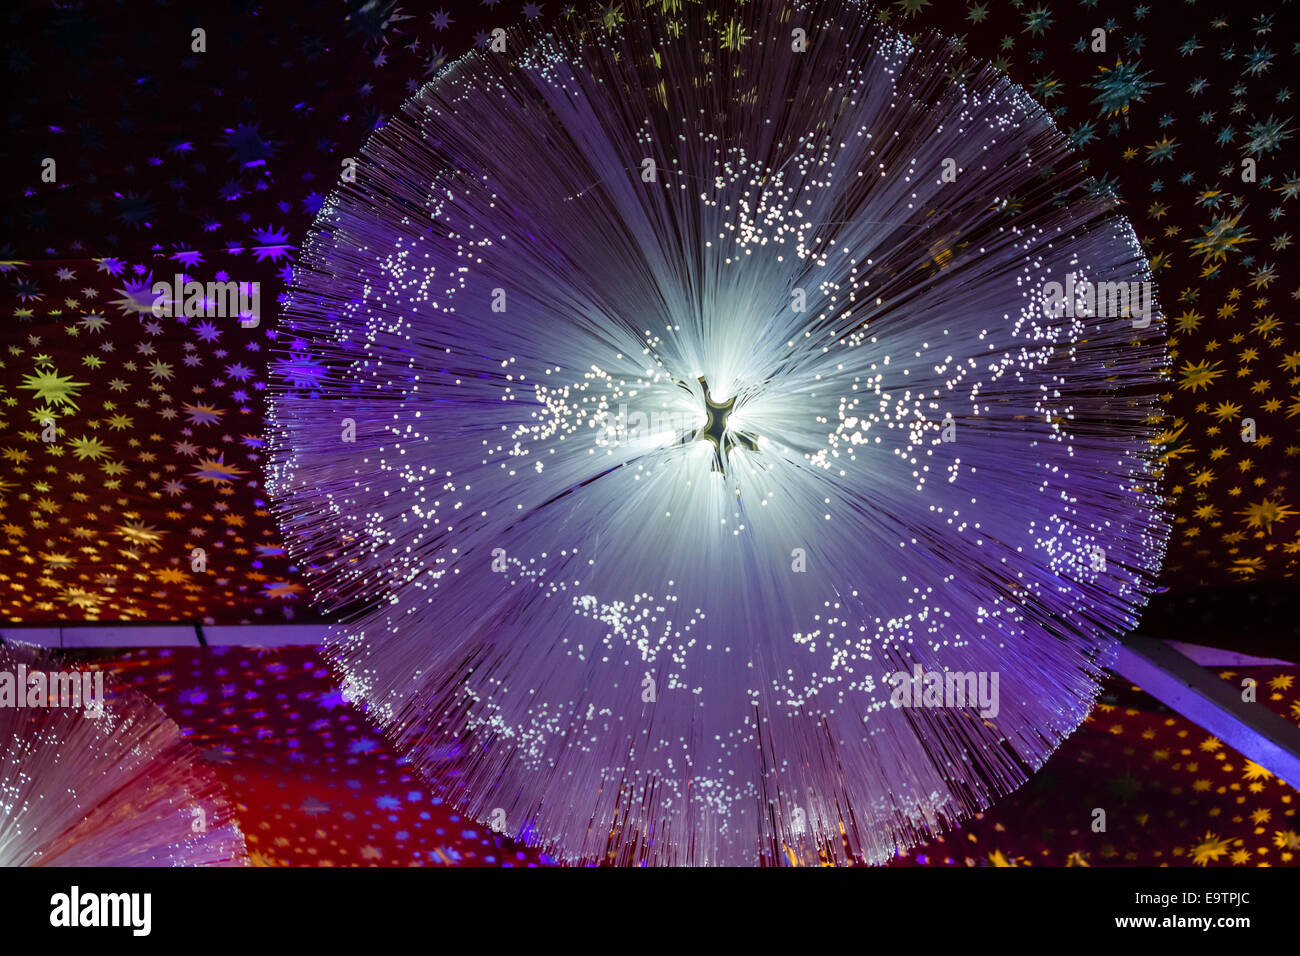 Close-up detail of a fiber optic lamp - Stock Image